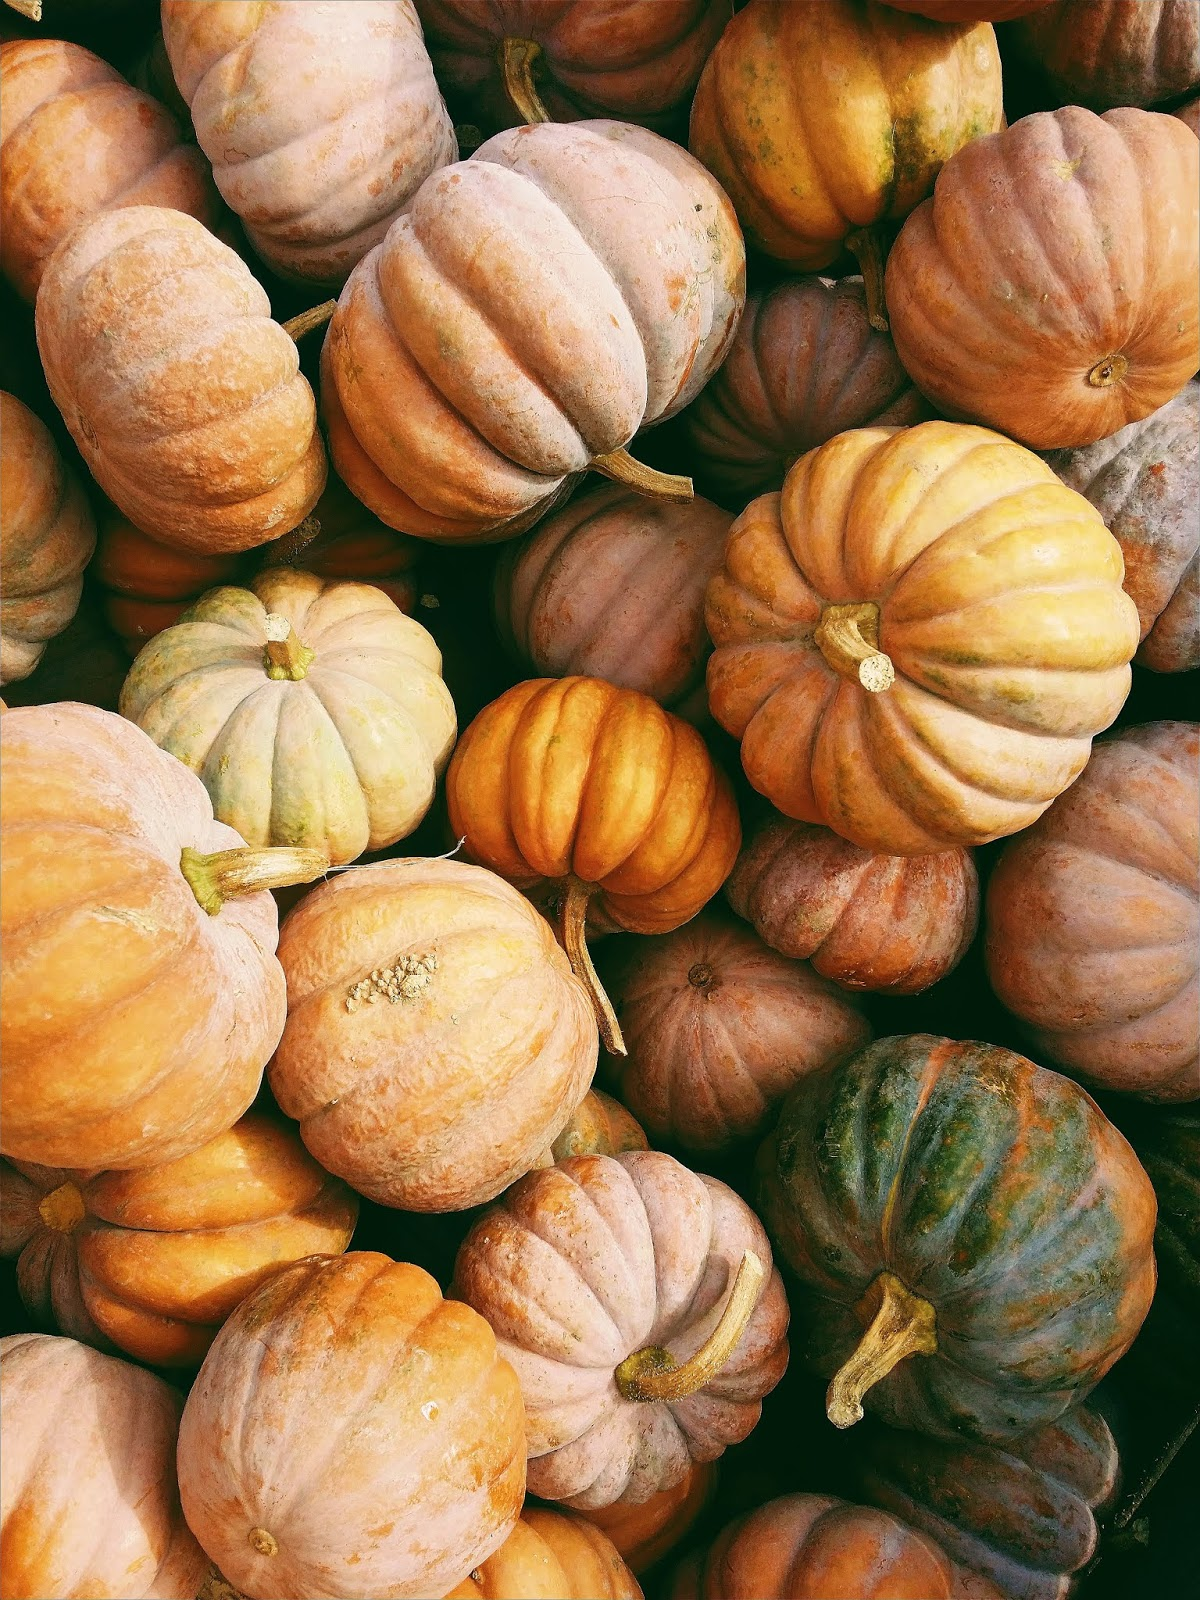 Pumpkin Rescue, jack-o'-lantern waste, food waste uk, halloween food waste, food waste problem, food waste problem in the world, food waste facts, food waste solutions, food waste articles, how to reduce food waste, food waste facts 2019, project drawdown, pumpkin recipes, pumpkin benefits, pumpkin carving, pumpkin nutrition, pumpkin halloween, pumpkin soup, pumpkin pie, food waste articles, food waste definition, essay on food wastage, food waste solutions, is food waste really a problem, why is food waste a global issue, facts about food waste at home, causes of food wastage, food waste uk, spending food waste apps, uk household food waste uk food waste, food waste ideas, why should we save food, food waste articles 2018, farm food waste food that gets thrown away, food waste in production, food waste capitalism, uk food waste management, toast ale, food waste statistics 2018